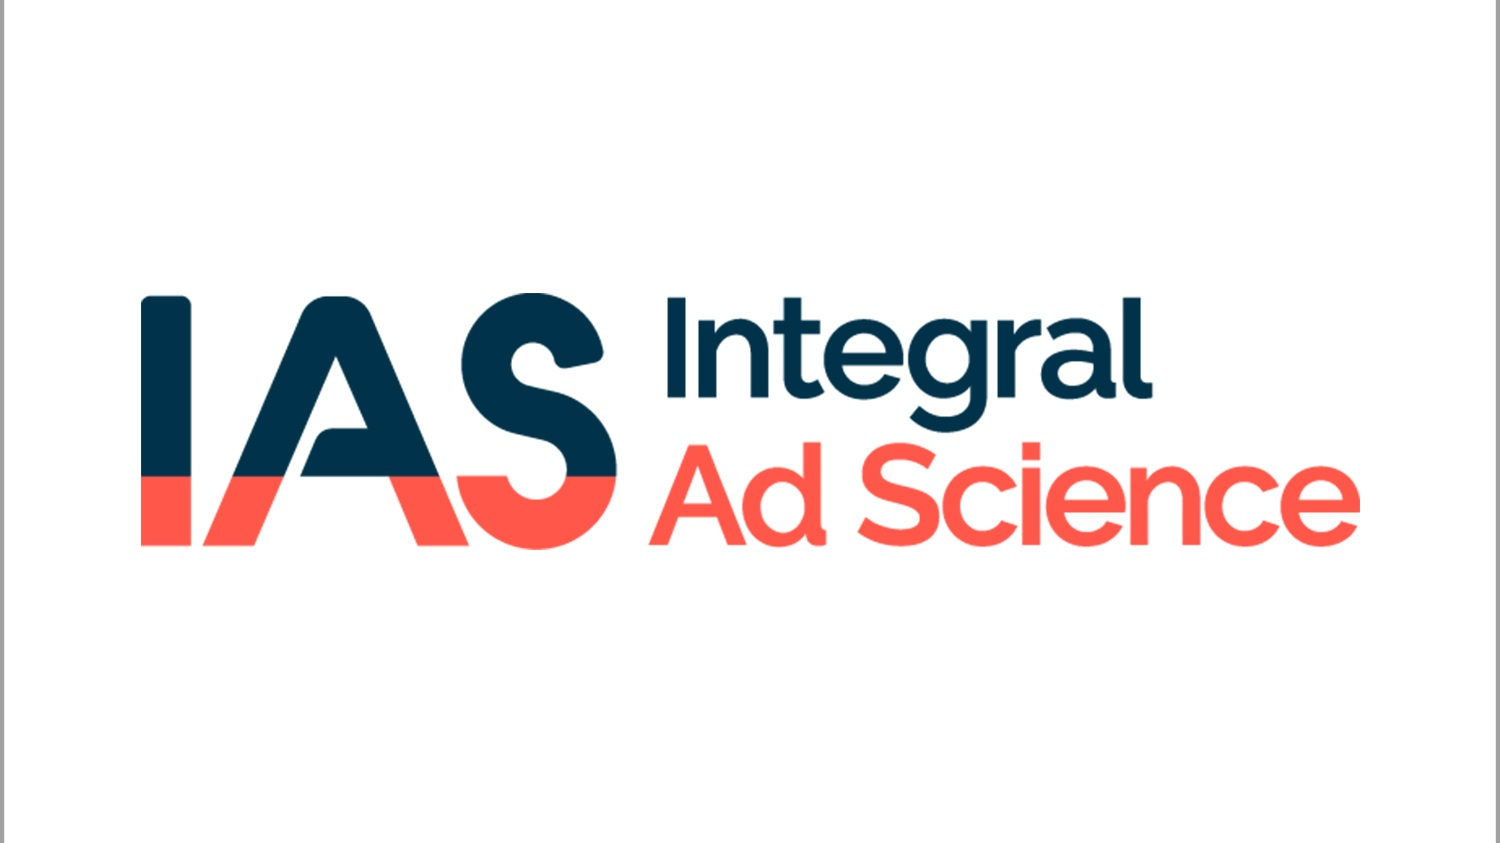 Integral+ad+science.jpg